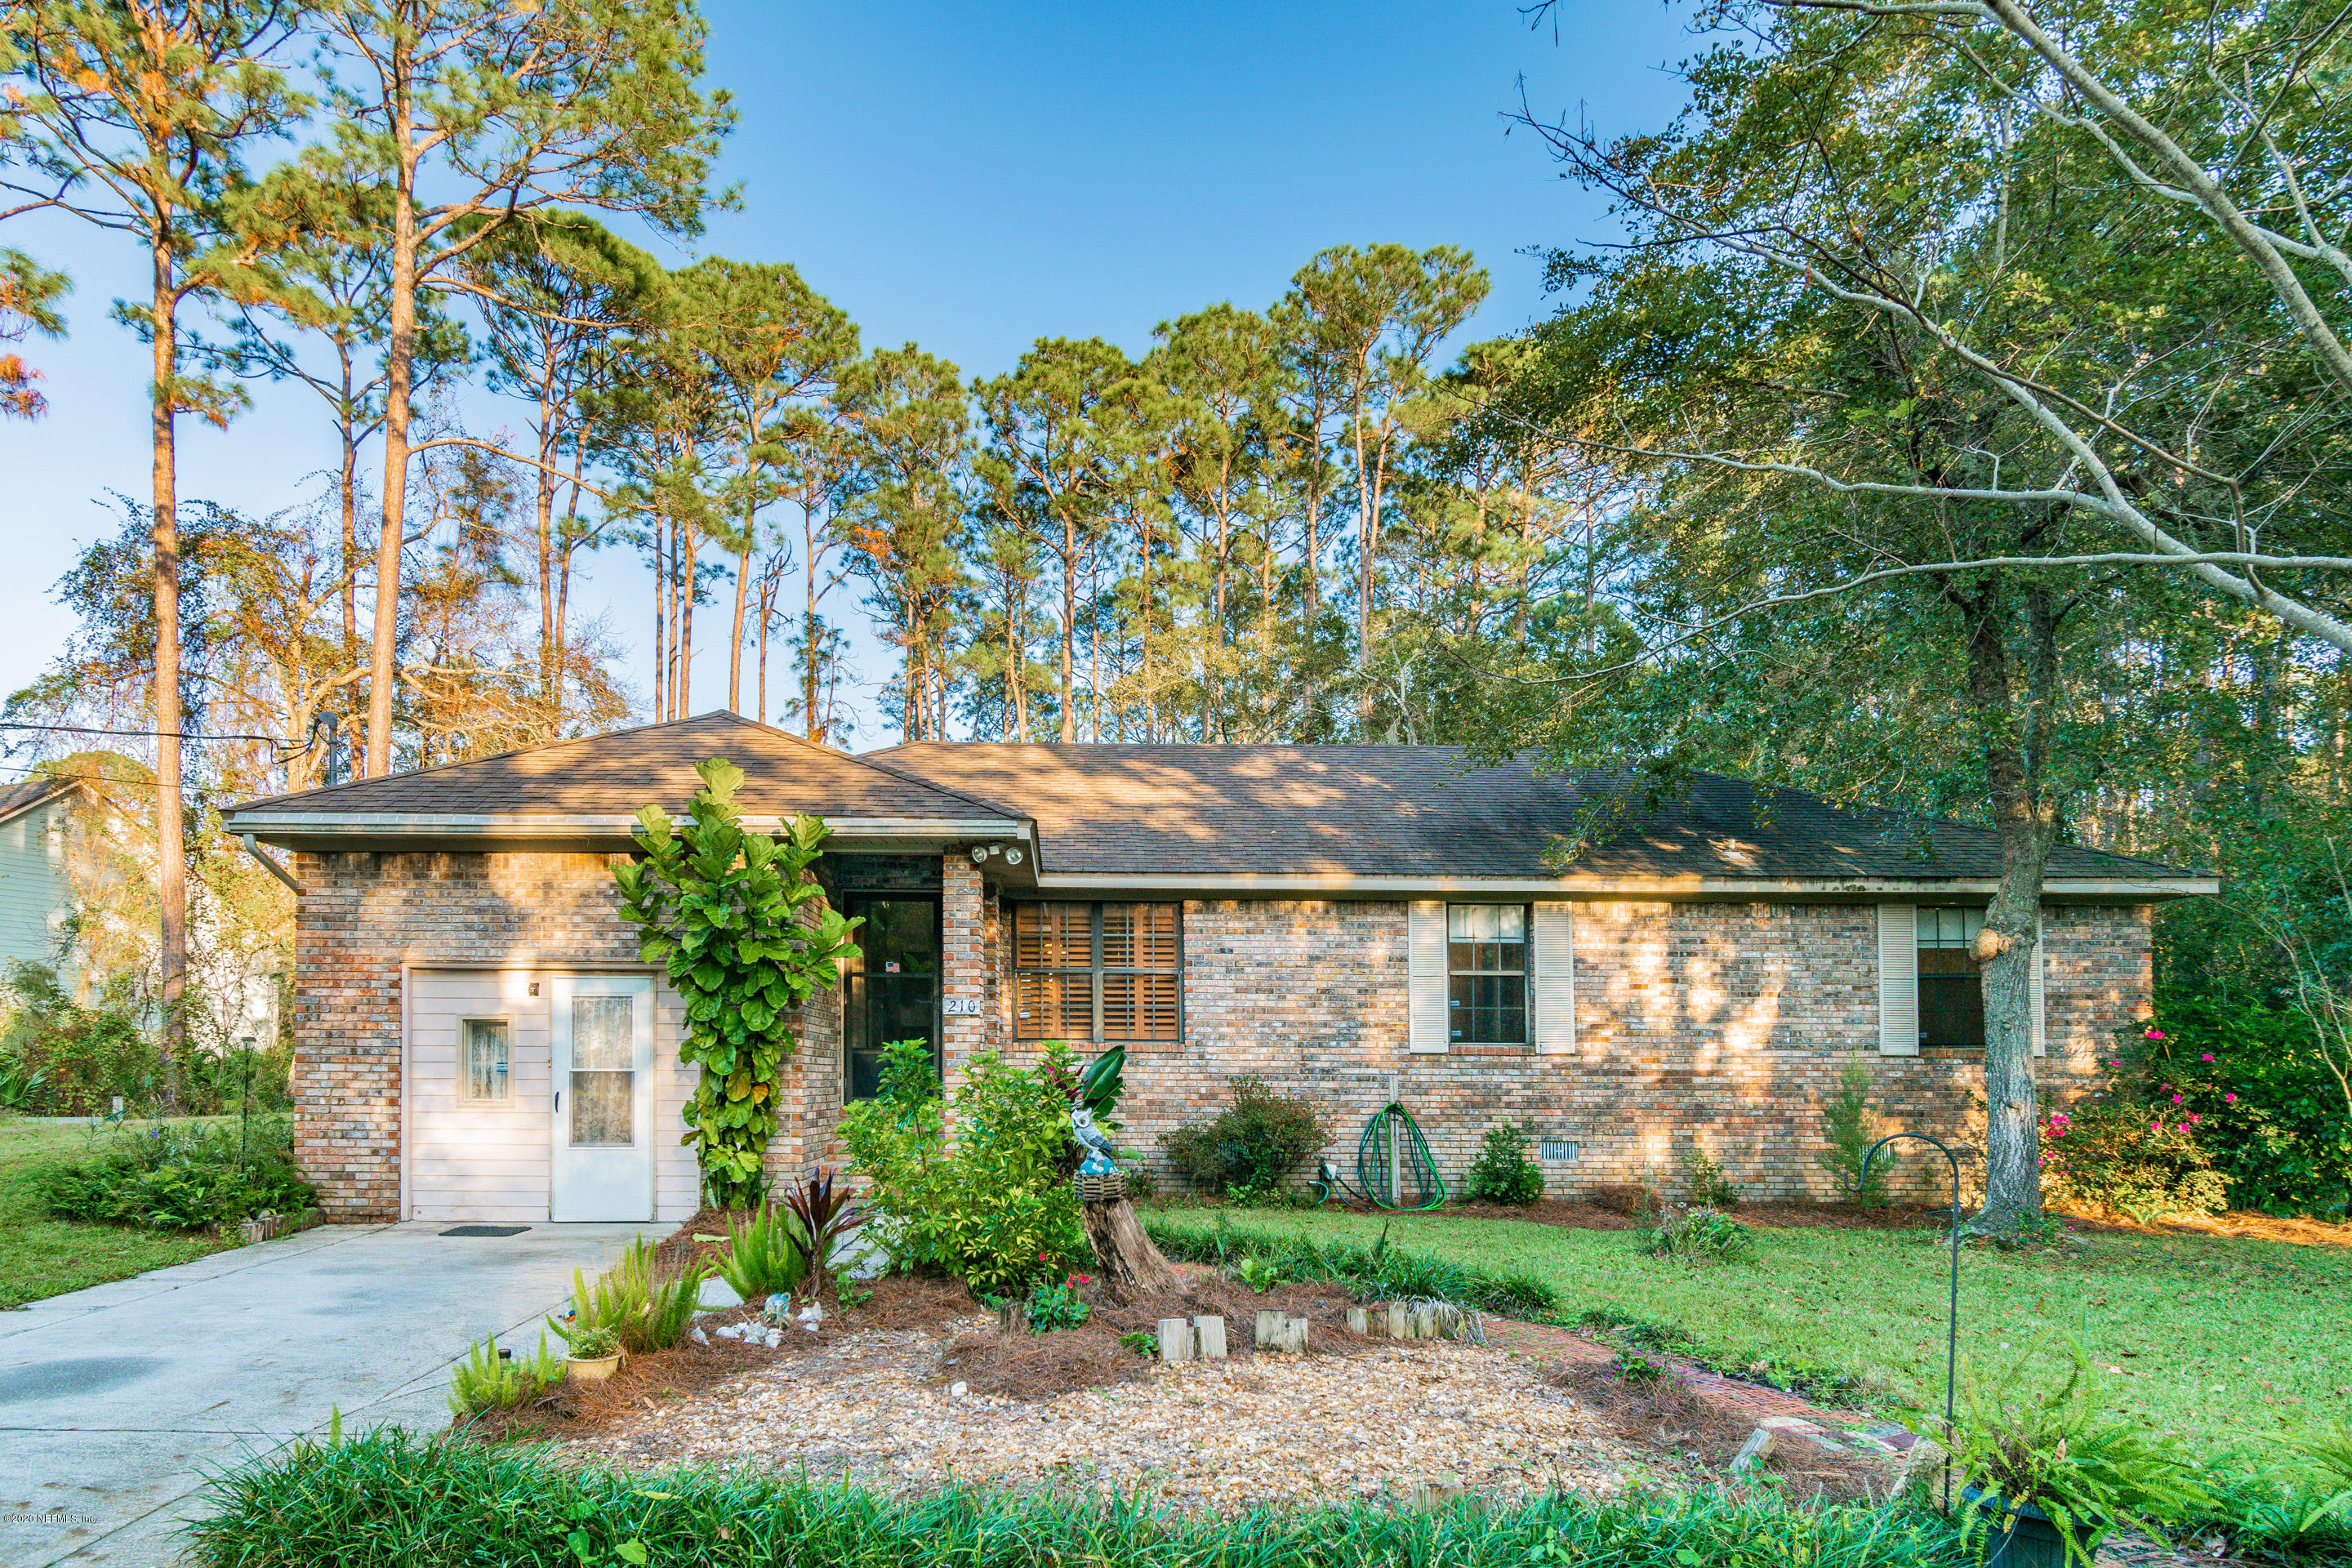 Image 3 of 38 For 96068 Piney Island Dr